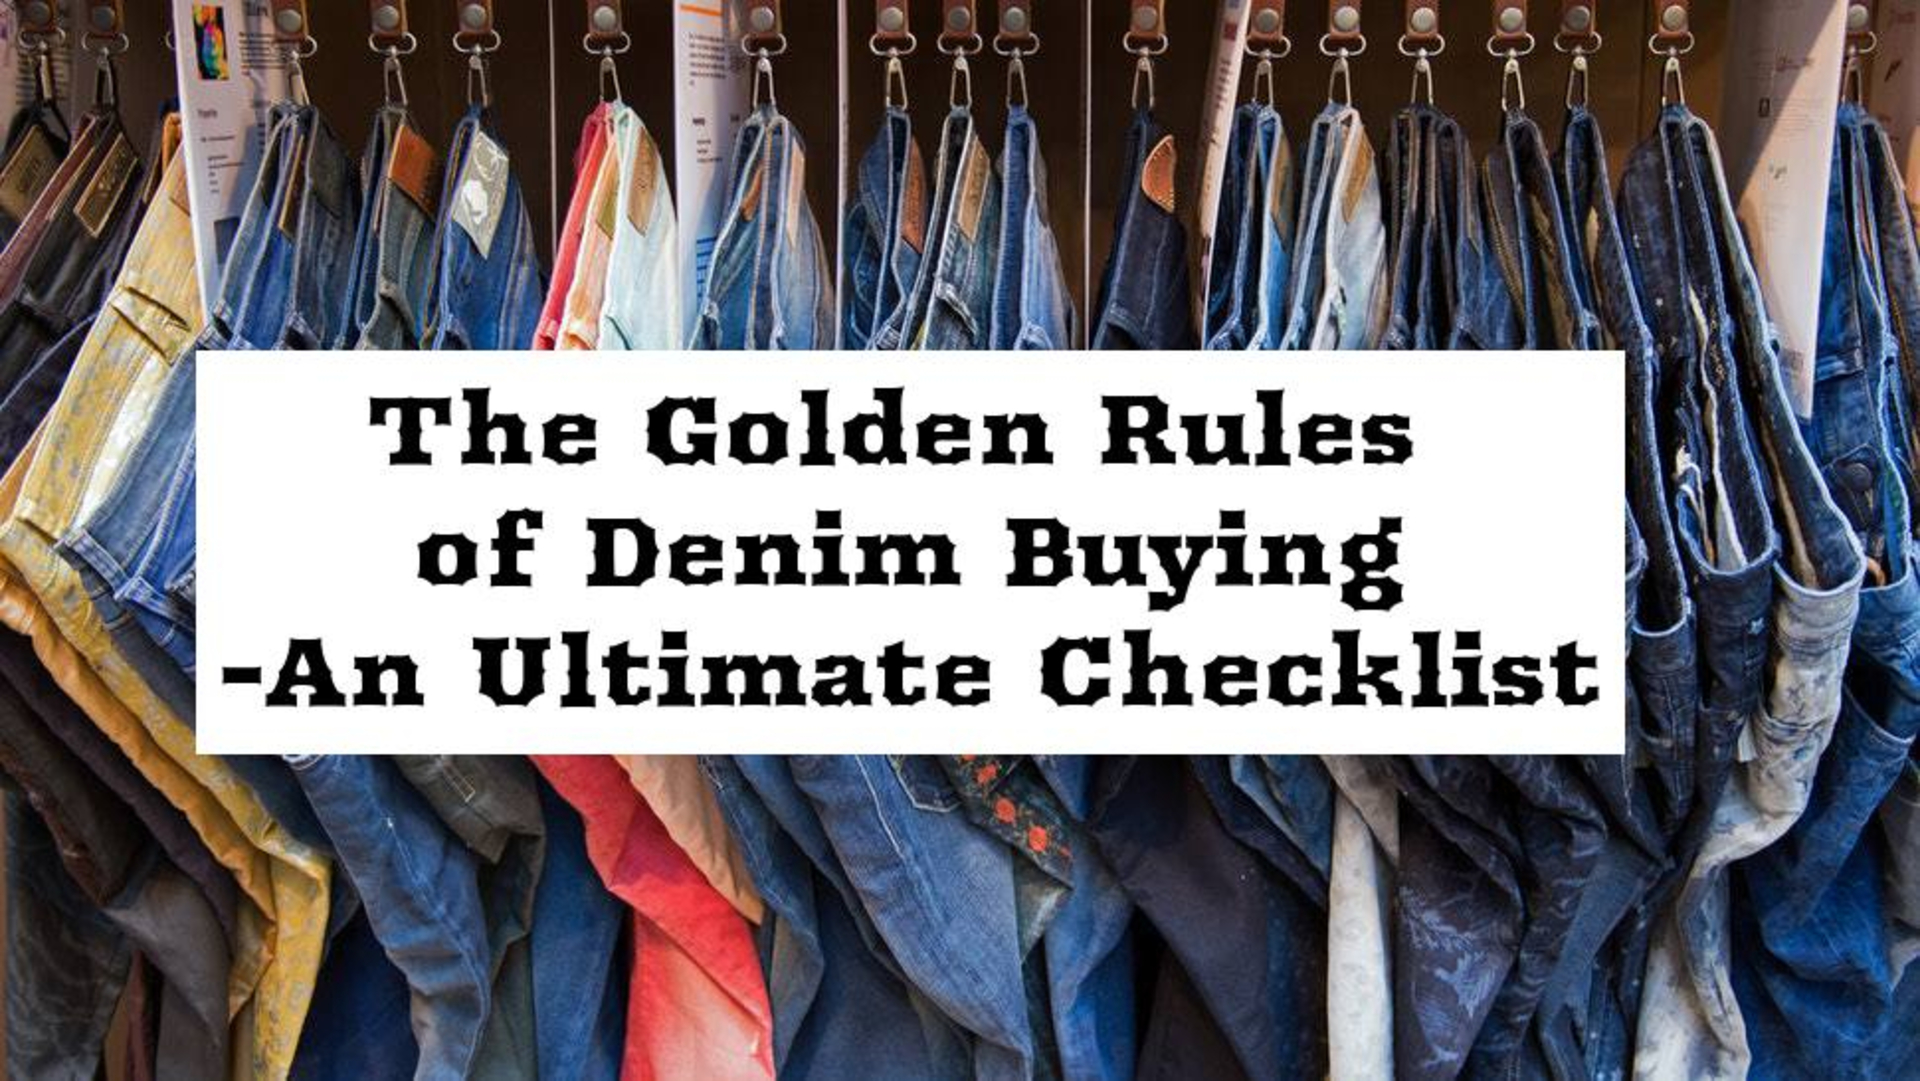 The Golden Rules of Denim Buying- An Ultimate Checklist image